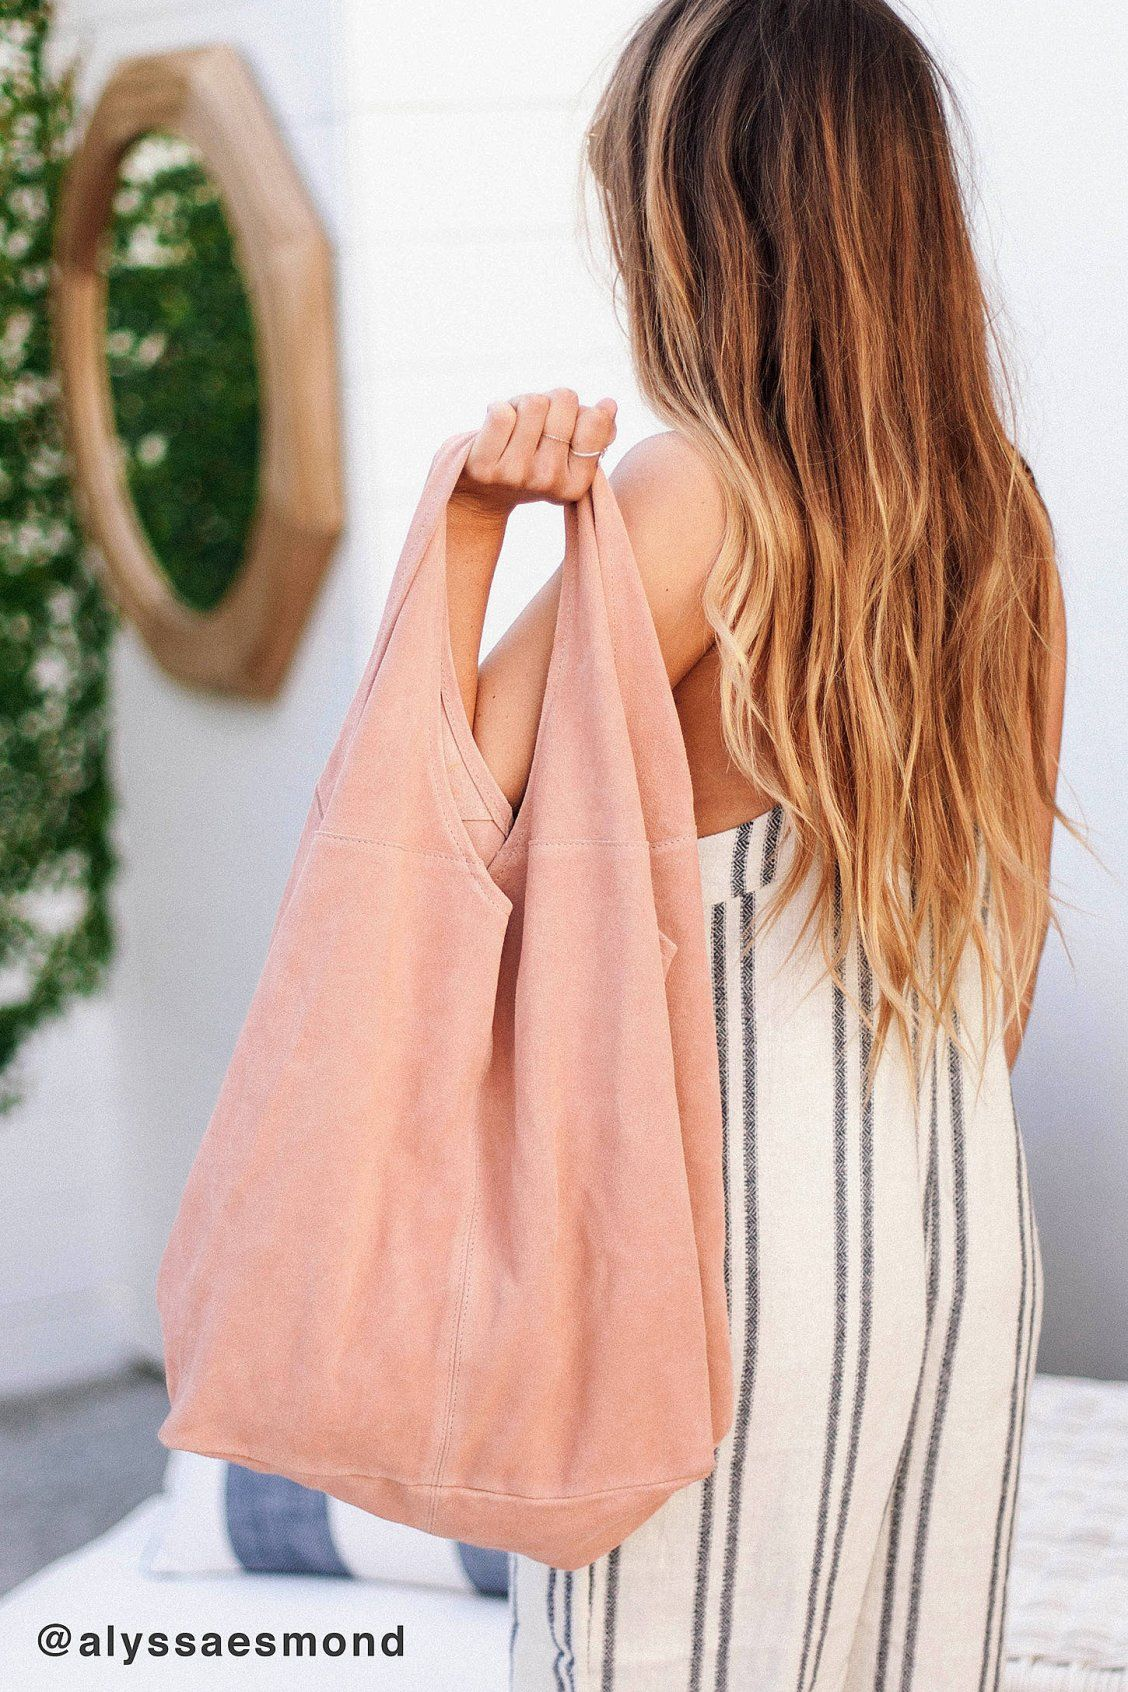 e2a69877aab Slouchy Suede Shopper Tote Bag   New Arrivals   Shopper tote, Bags ...